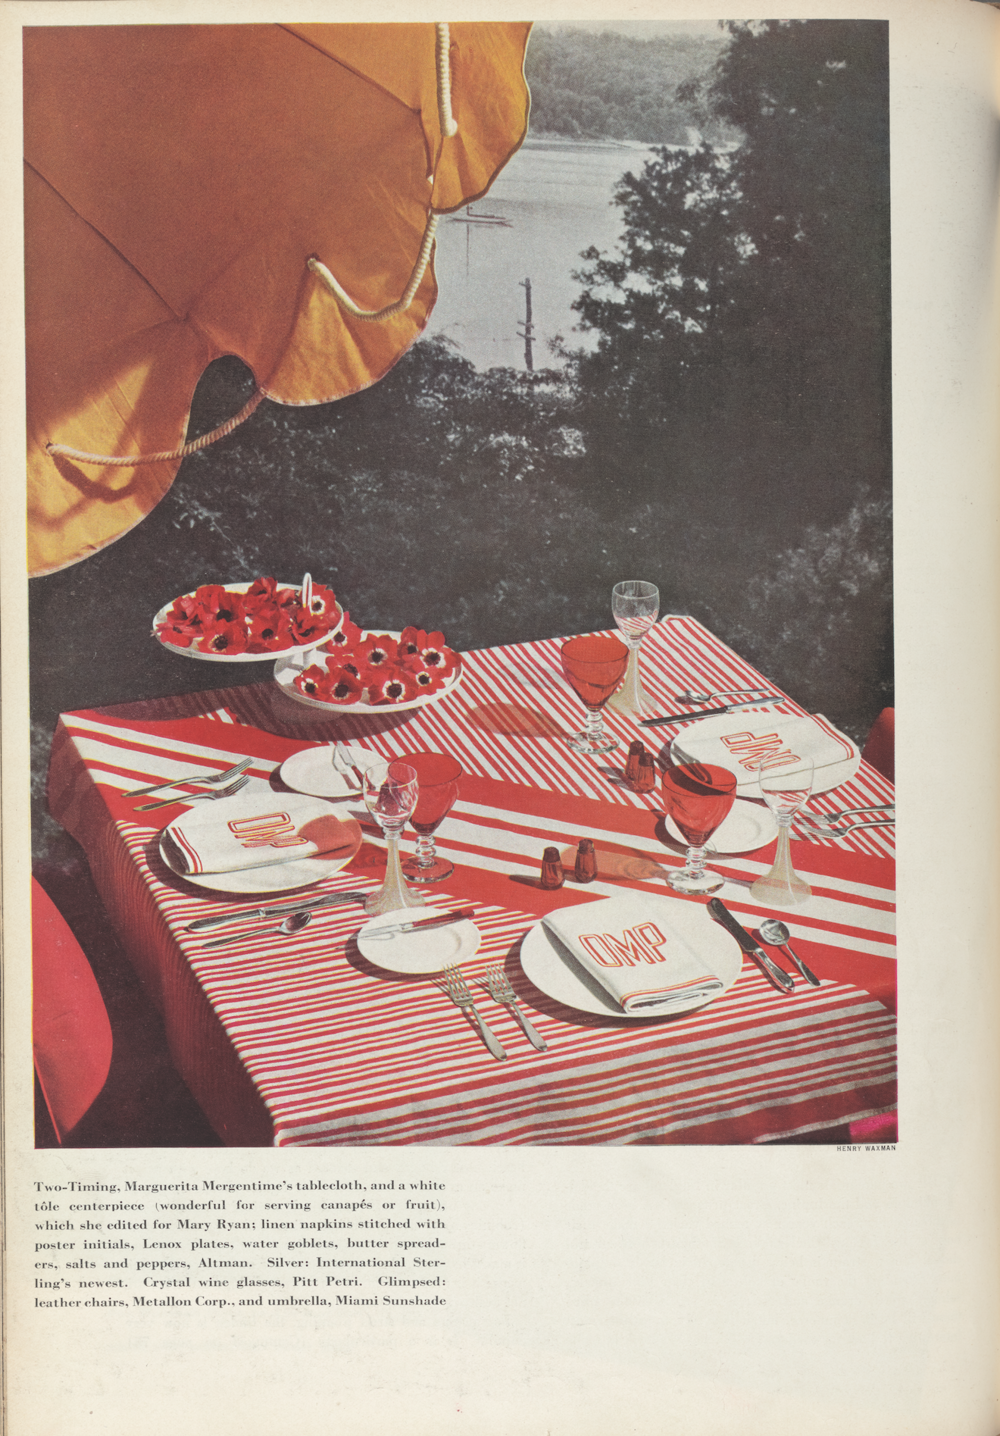 Marguerita Mergentime's Two-Timing tablecloth featured in House Beautiful, February 1935.